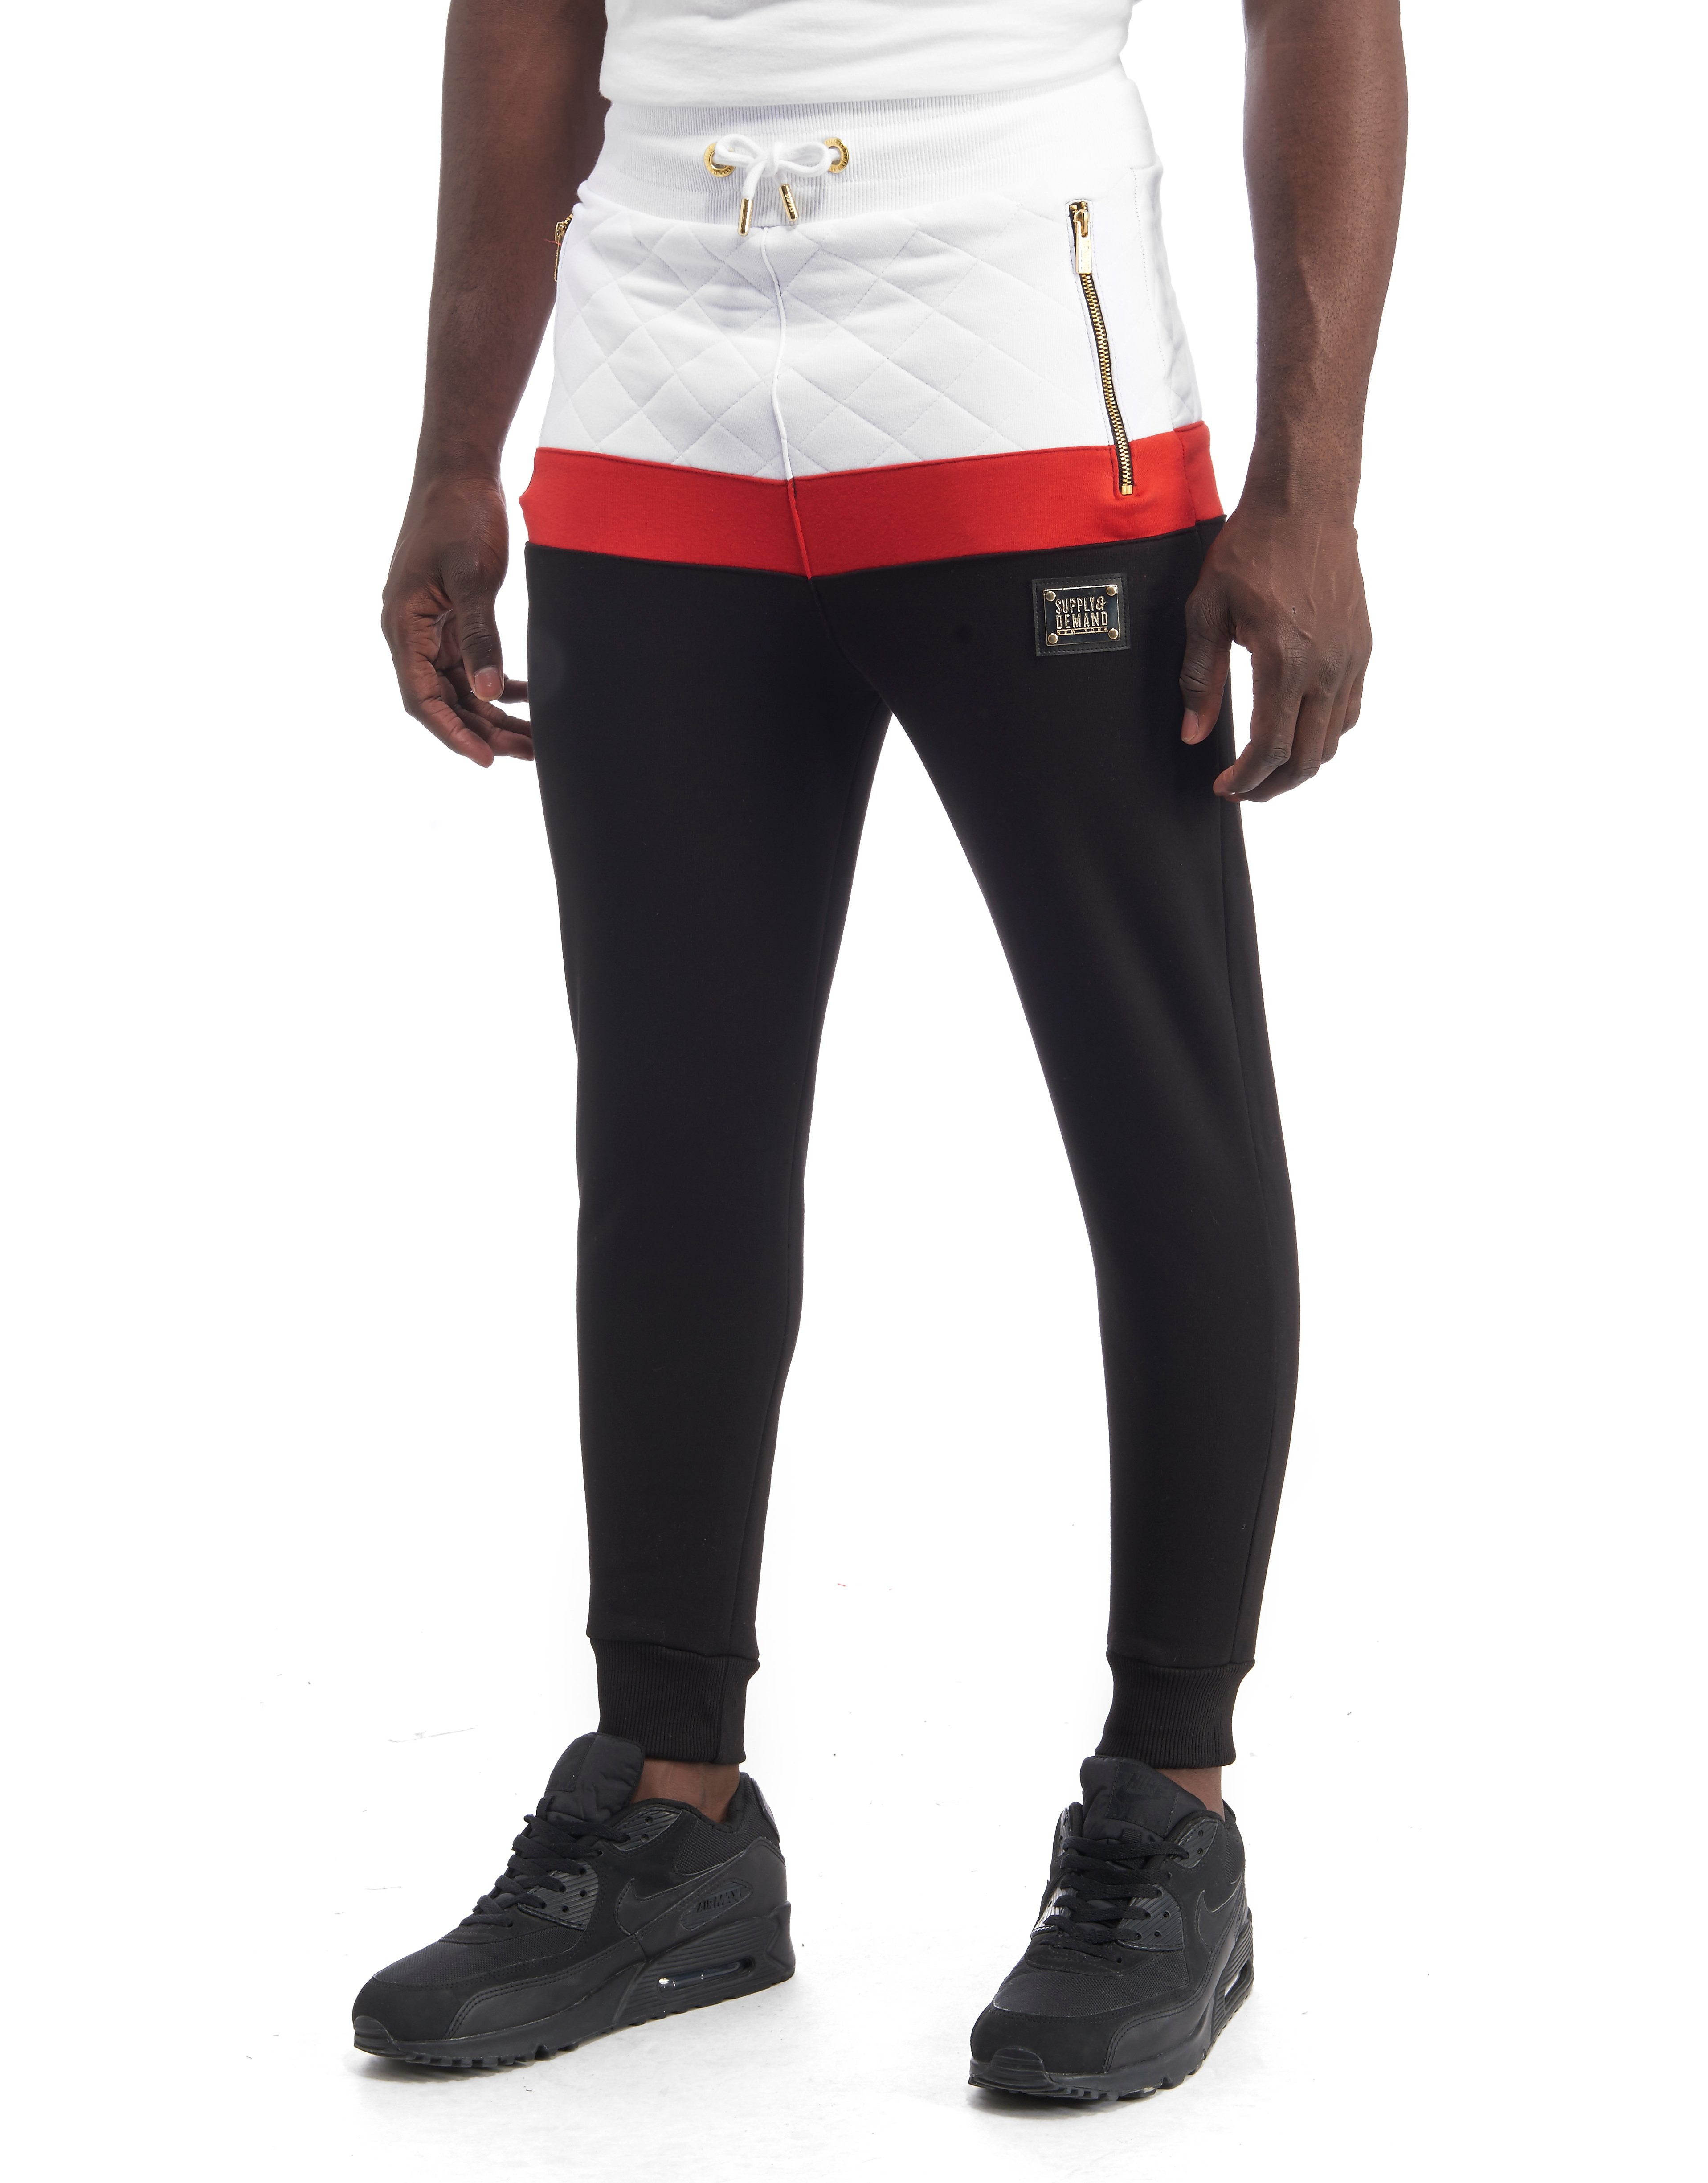 Supply & Demand Western Jogging Pants